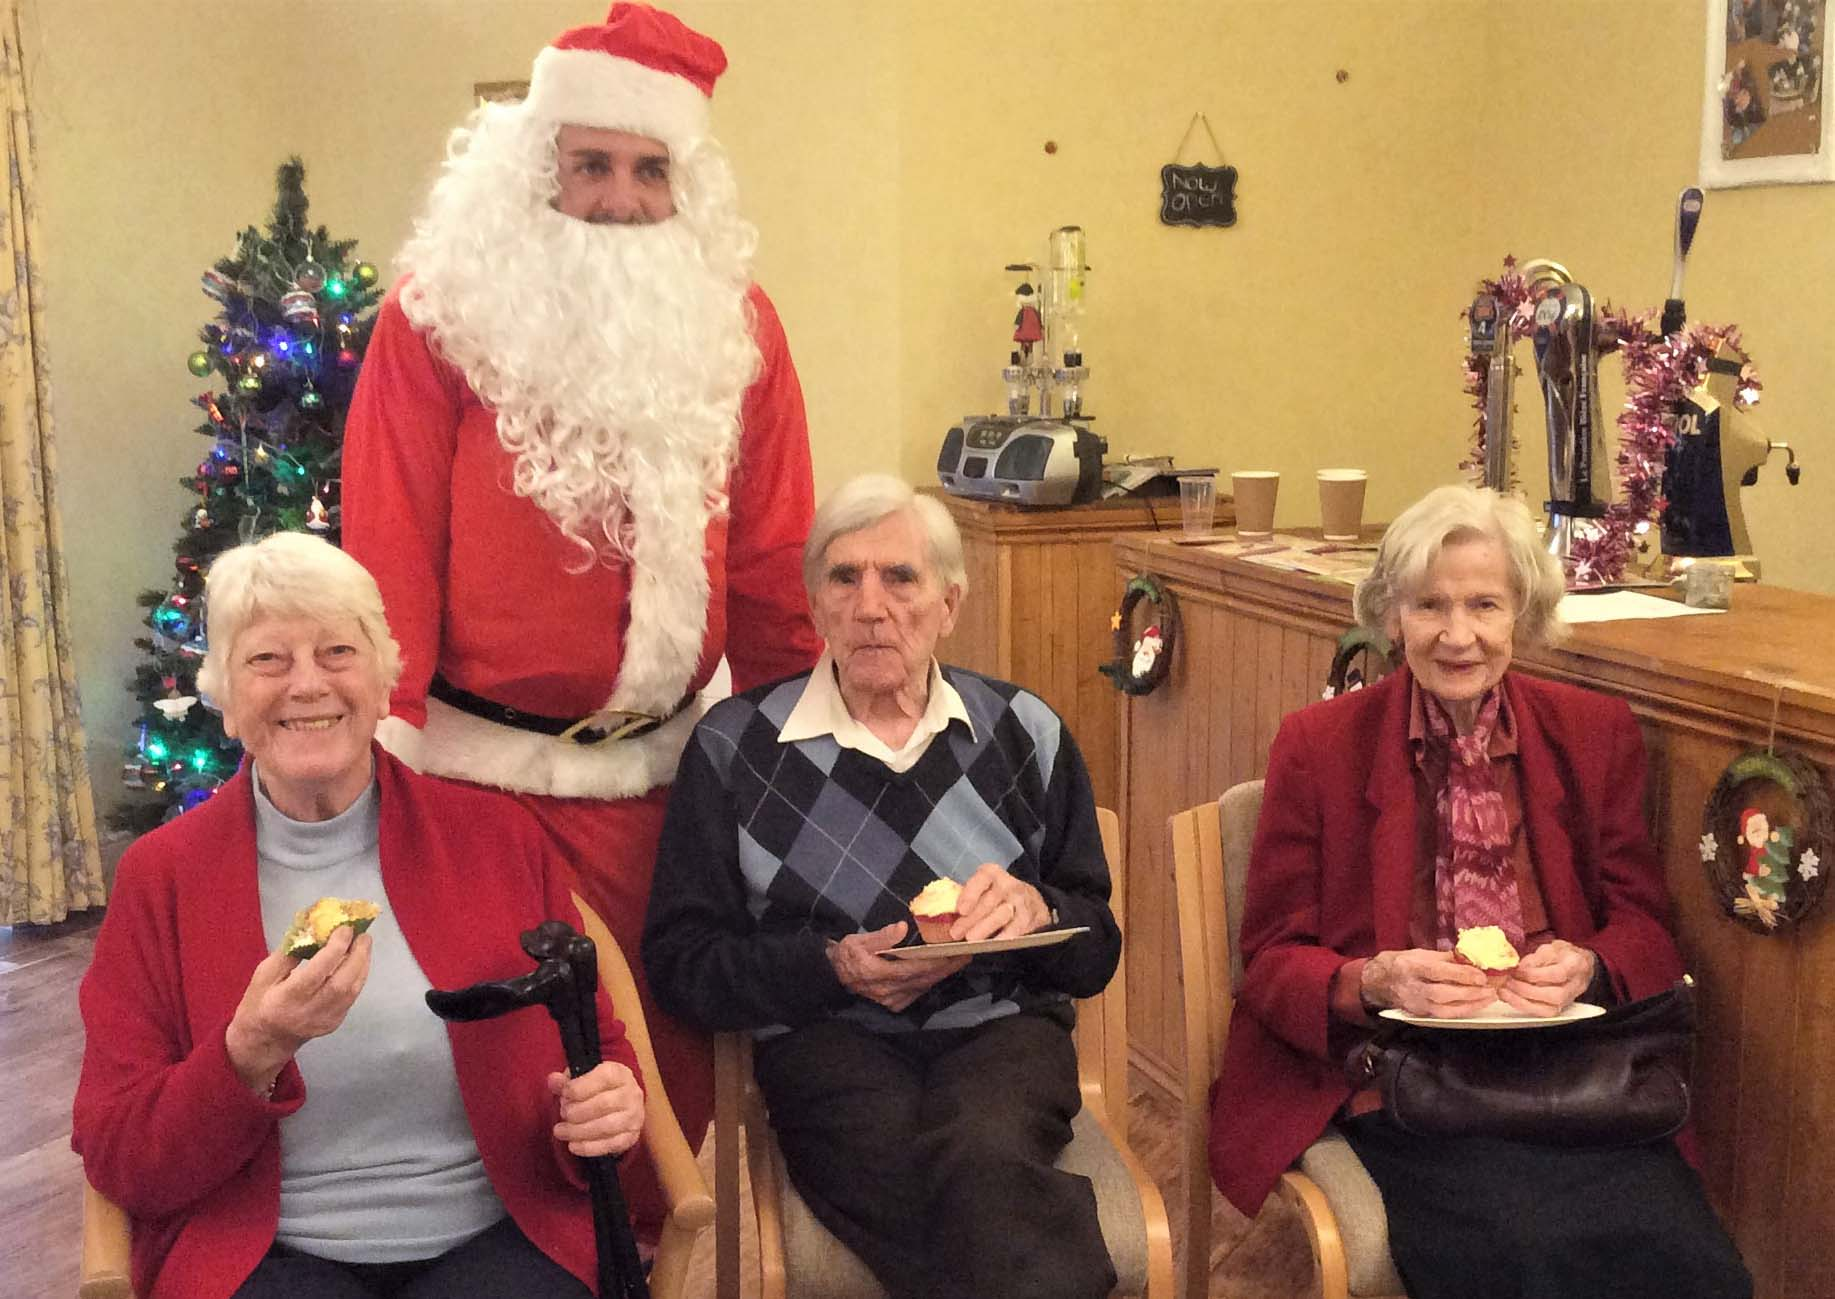 'Tis the season for a Christmas fete at Avery Lodge Care Home